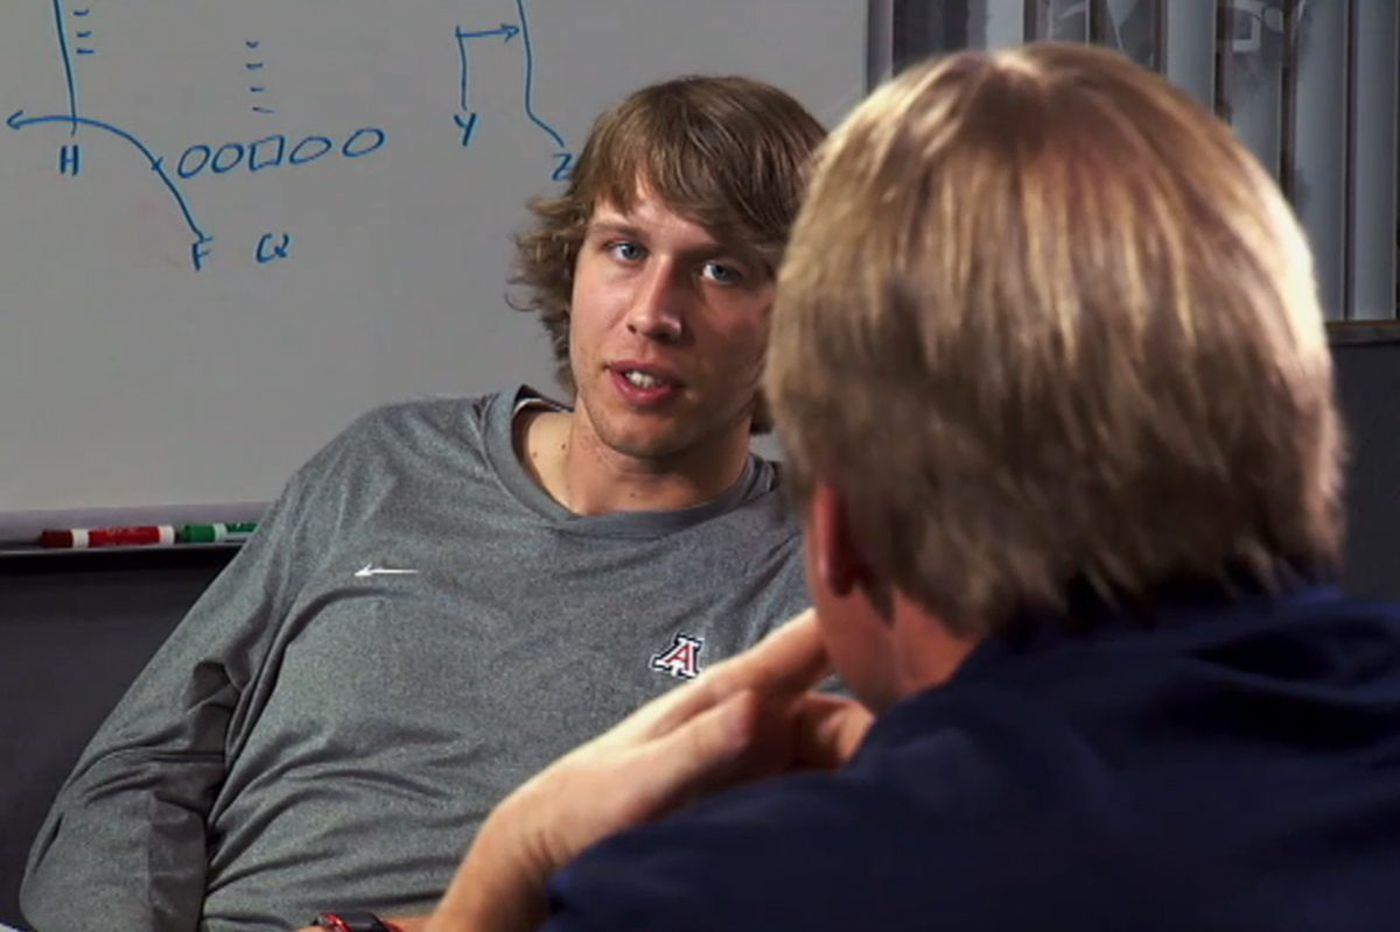 Nick Foles on Jon Gruden's 'QB Camp' in 2012: 'I'll make your team better'